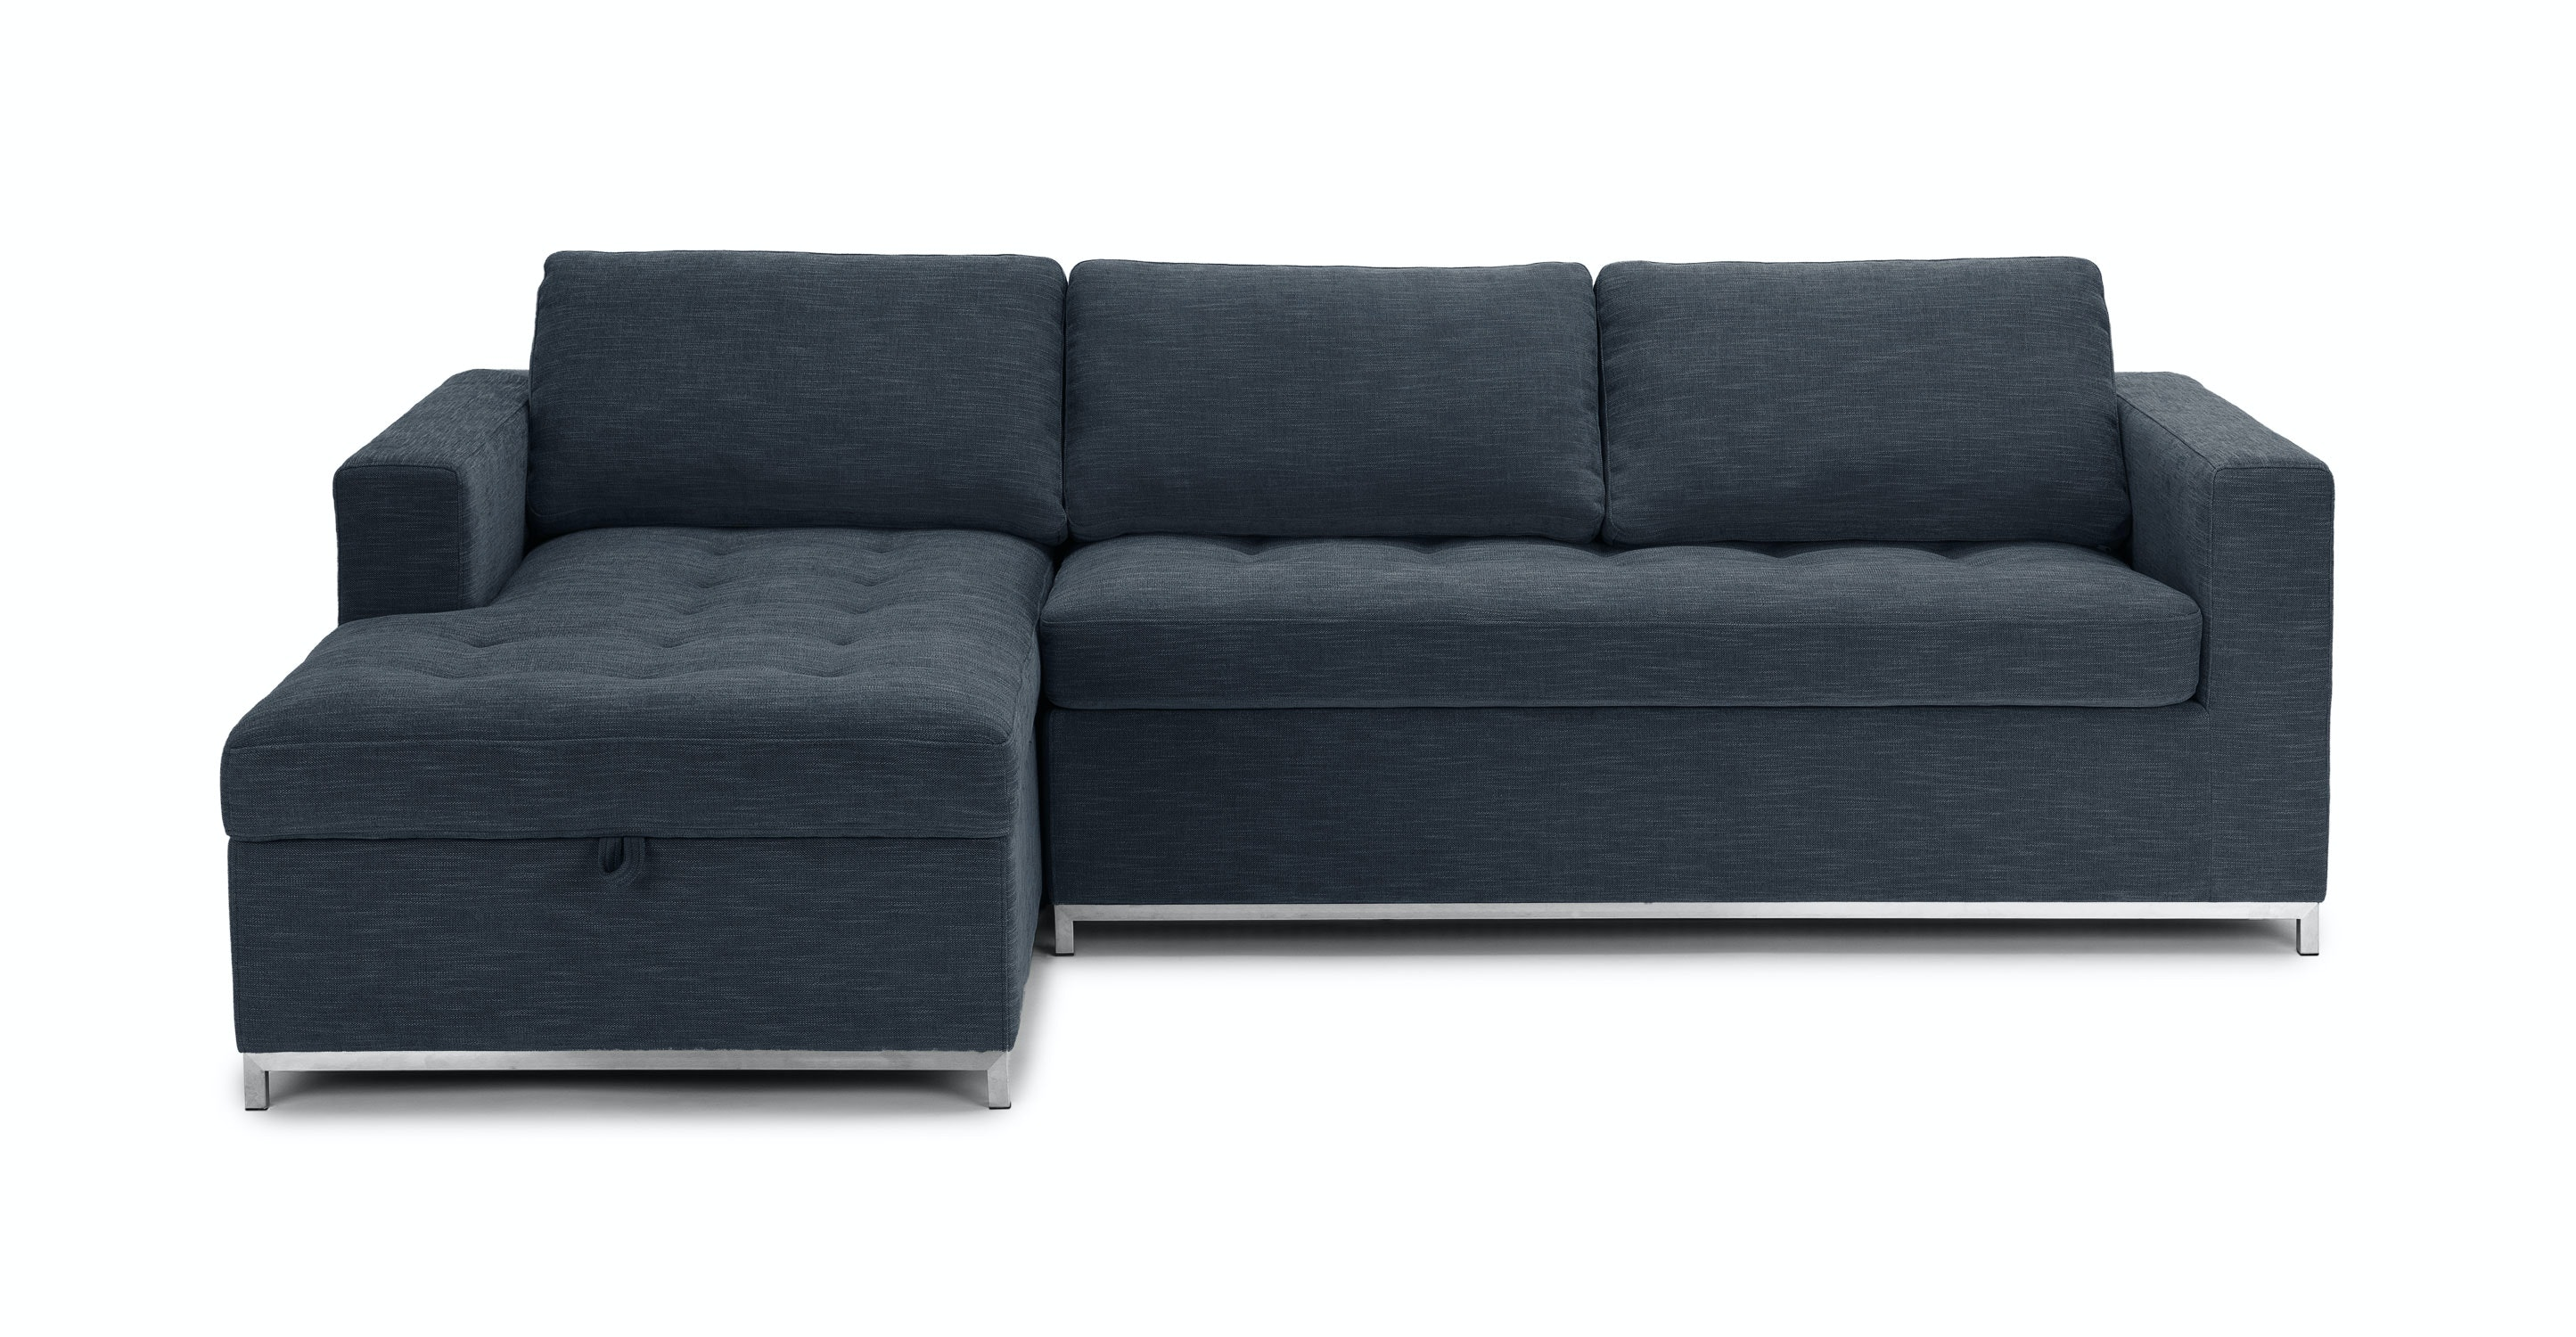 Exceptional Soma Midnight Blue Left Sofa Bed   Sectionals   Article | Modern,  Mid Century And Scandinavian Furniture